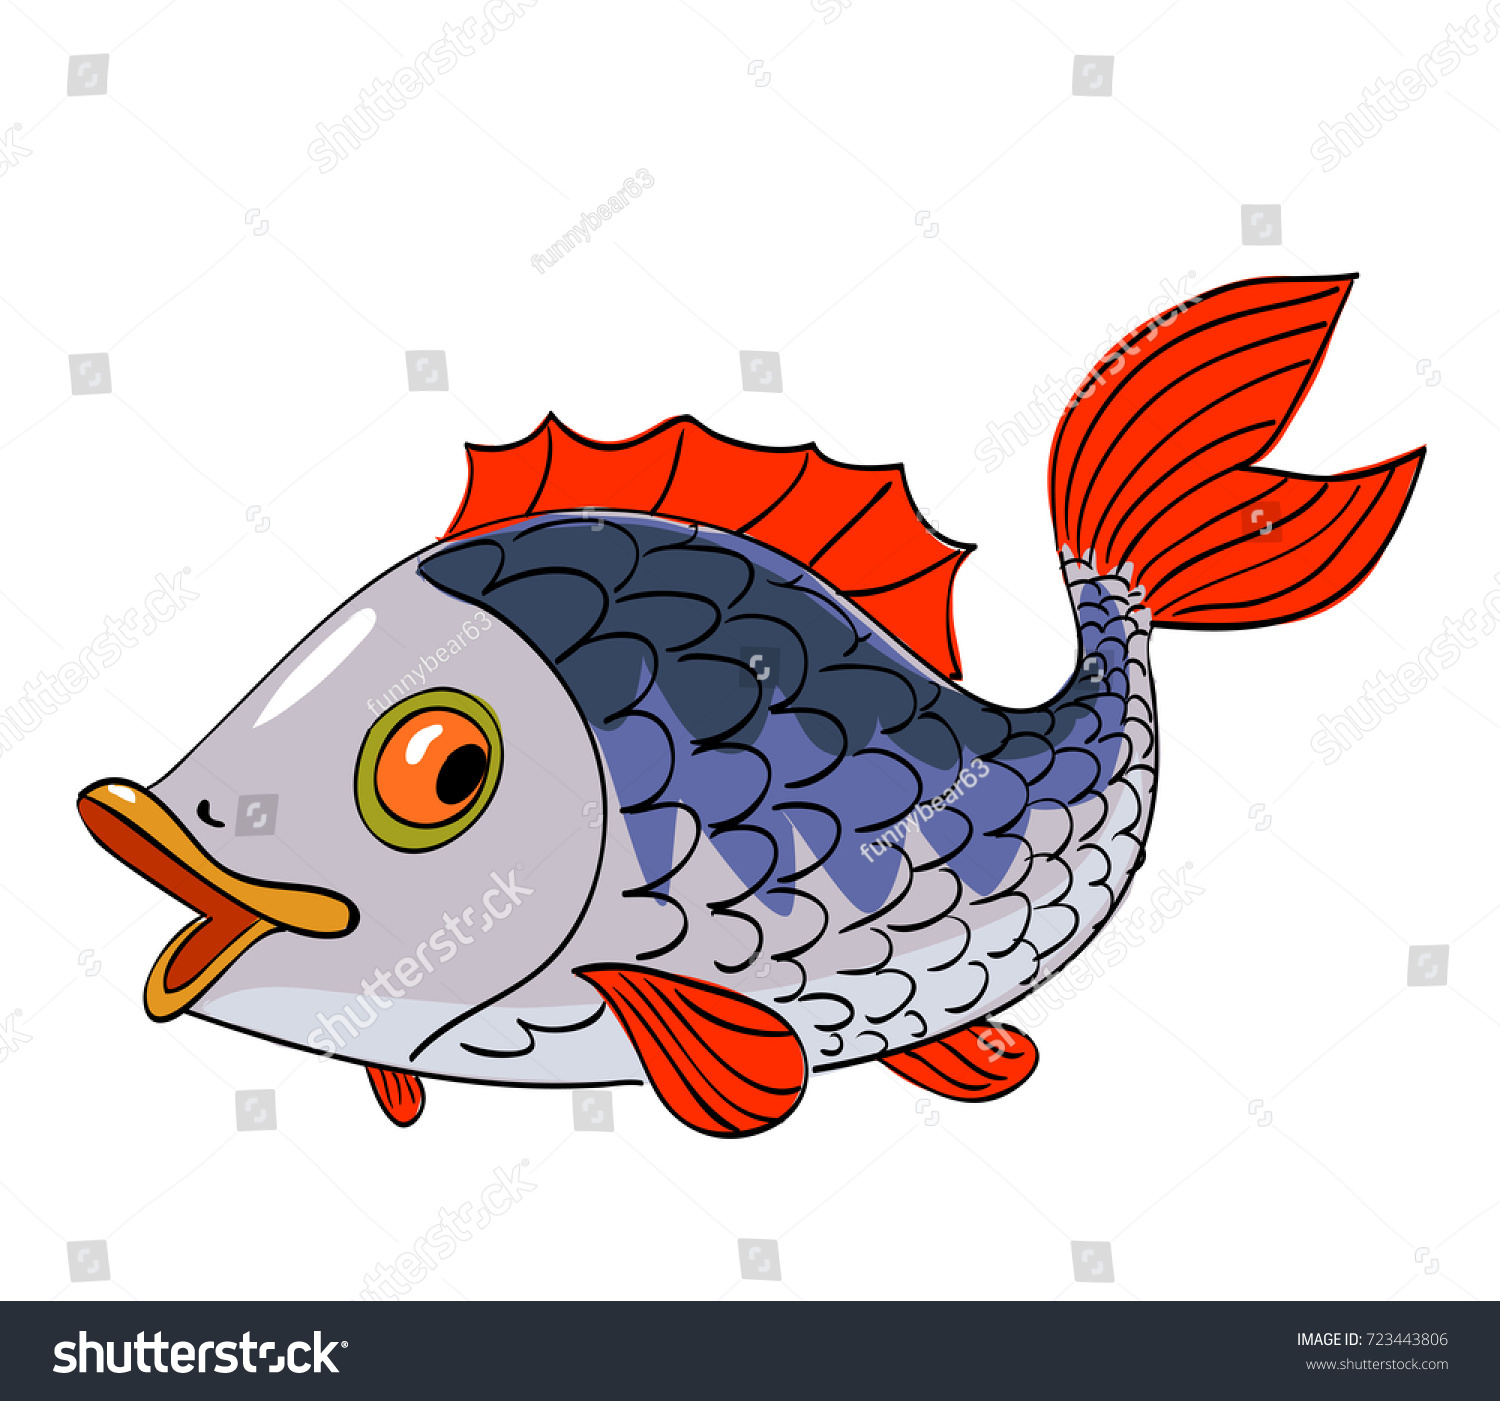 Funny Cute Colorful Fish Cartoon Image Stock Vector 723443806 ...